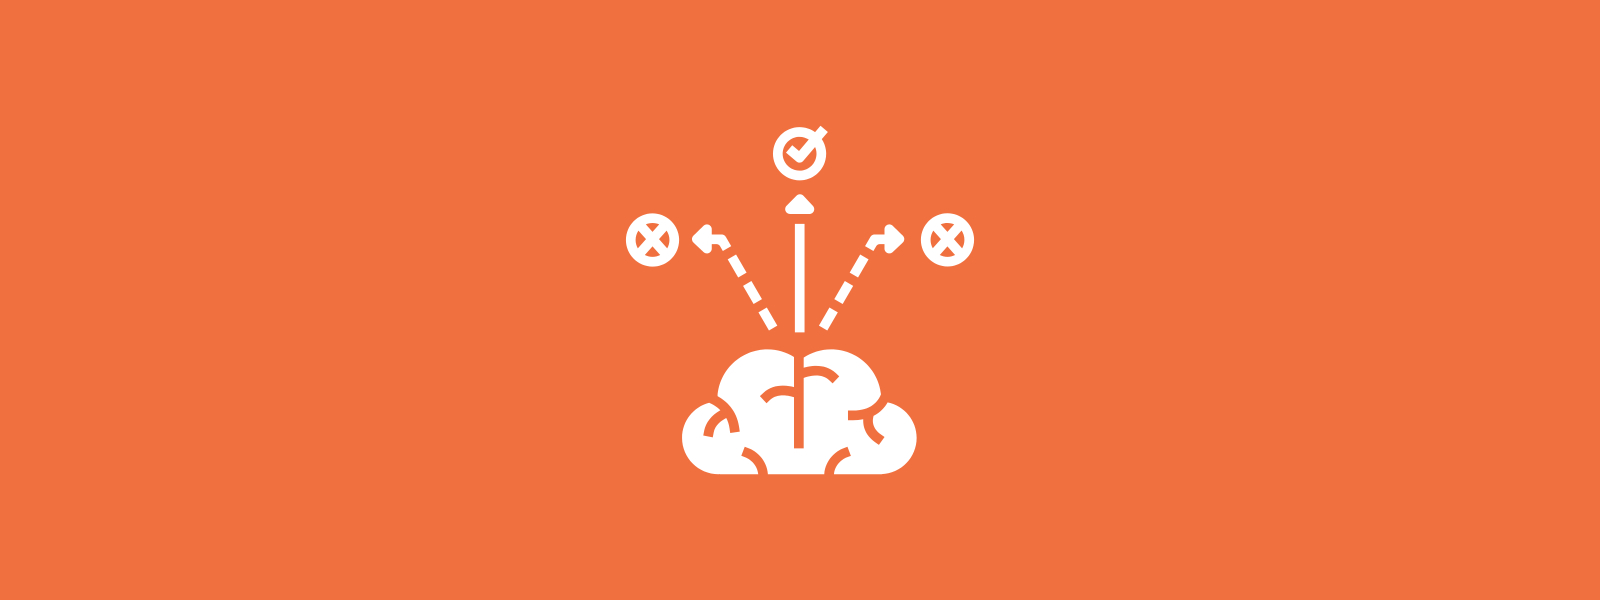 Icon background of brain thought process